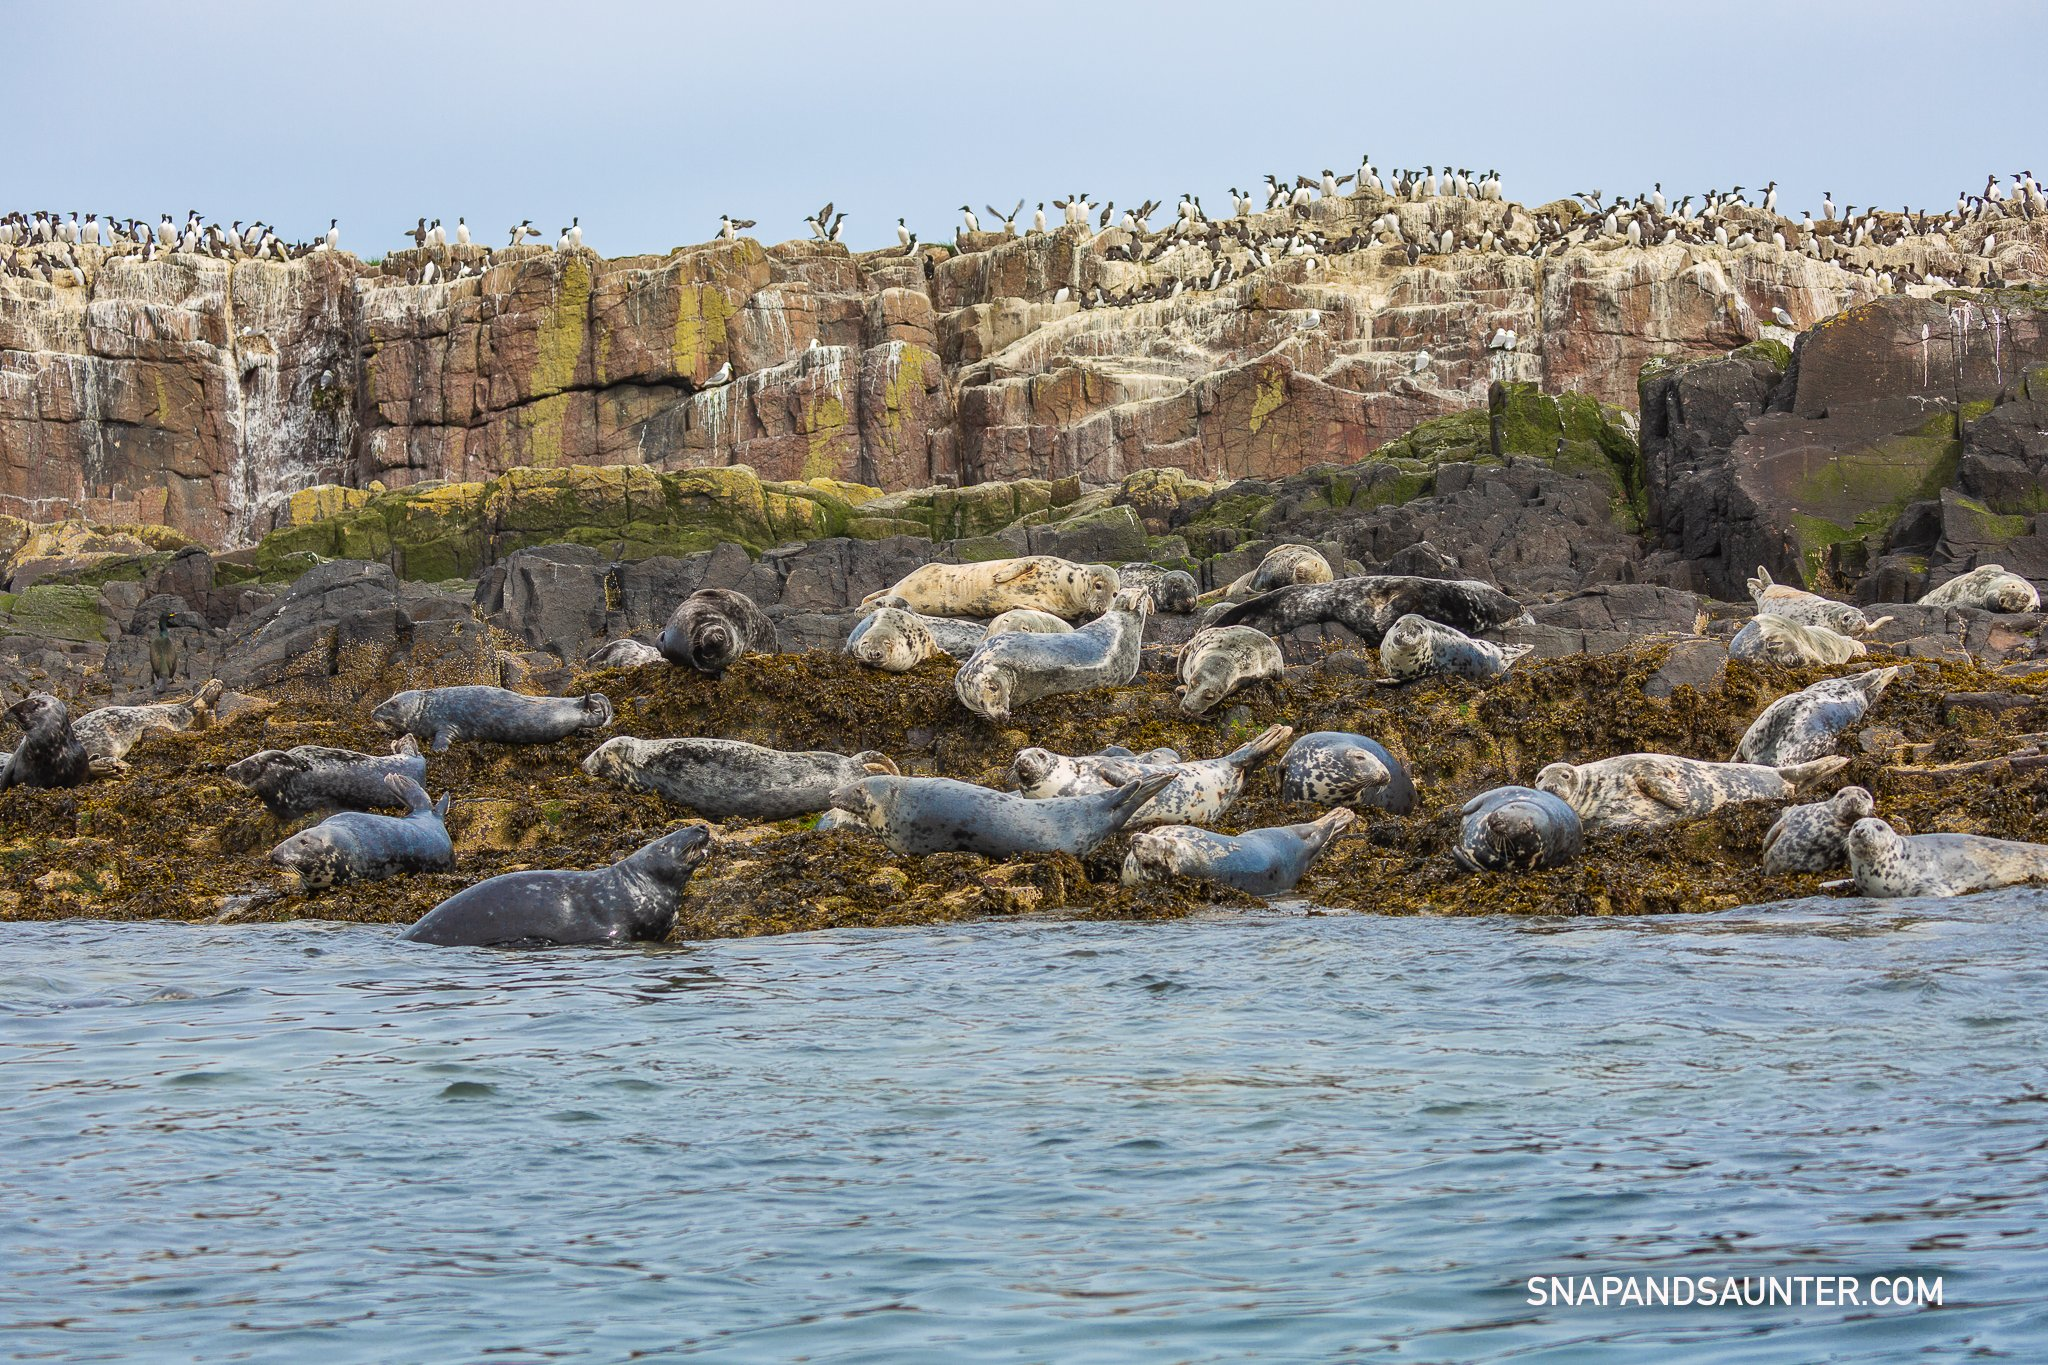 atlantic grey seal colony at Farne Islands